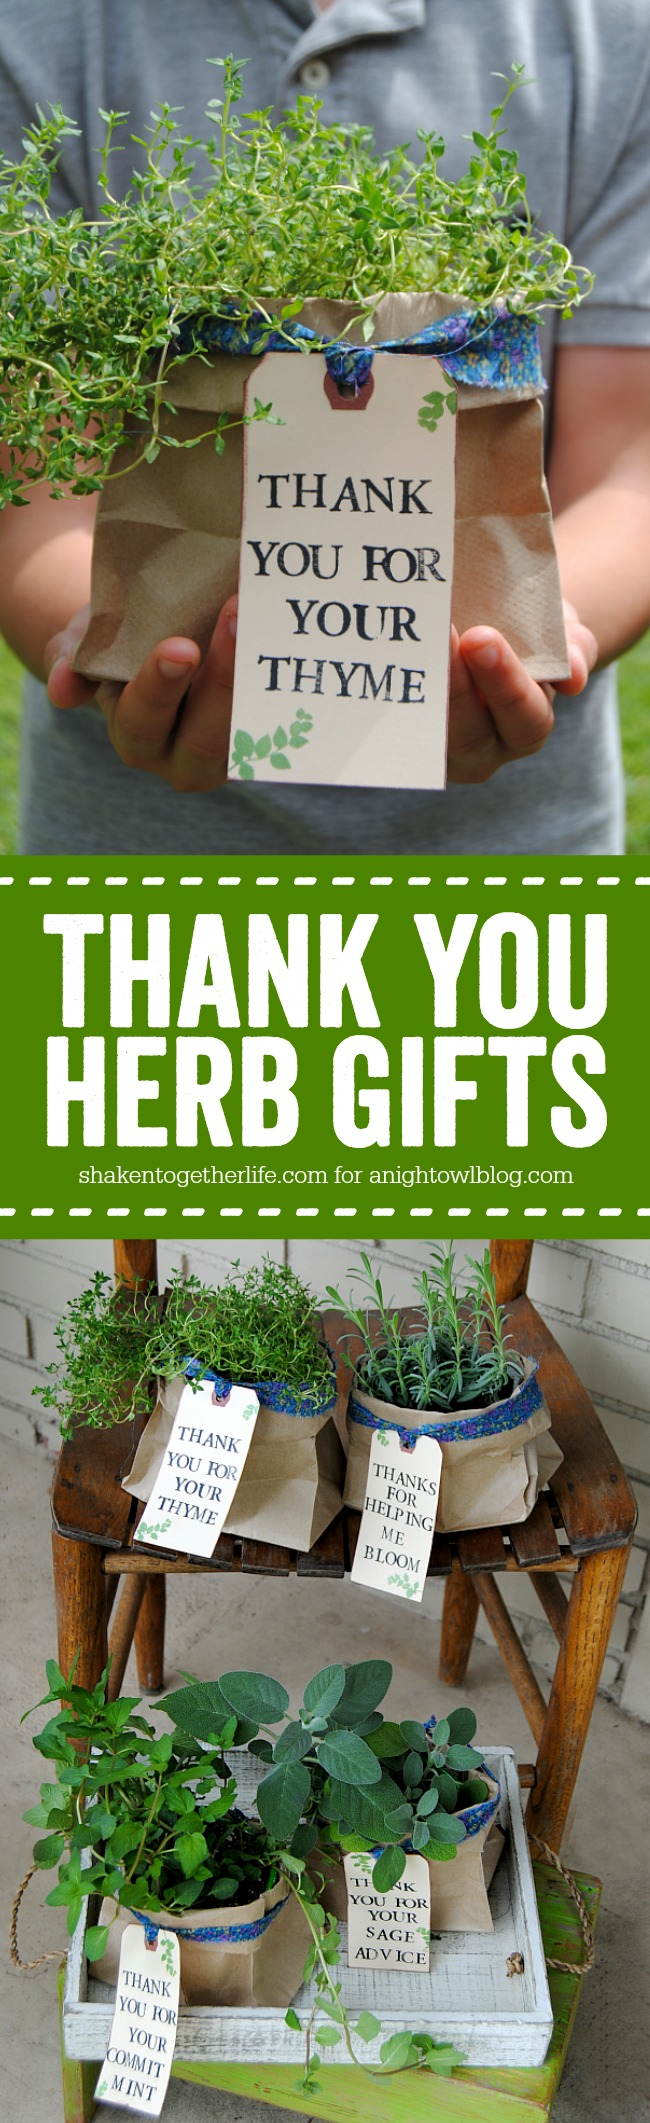 photo regarding Thank You for Your Commit Mint Printable named Thank Yourself Herb Presents A Night time Owl Weblog